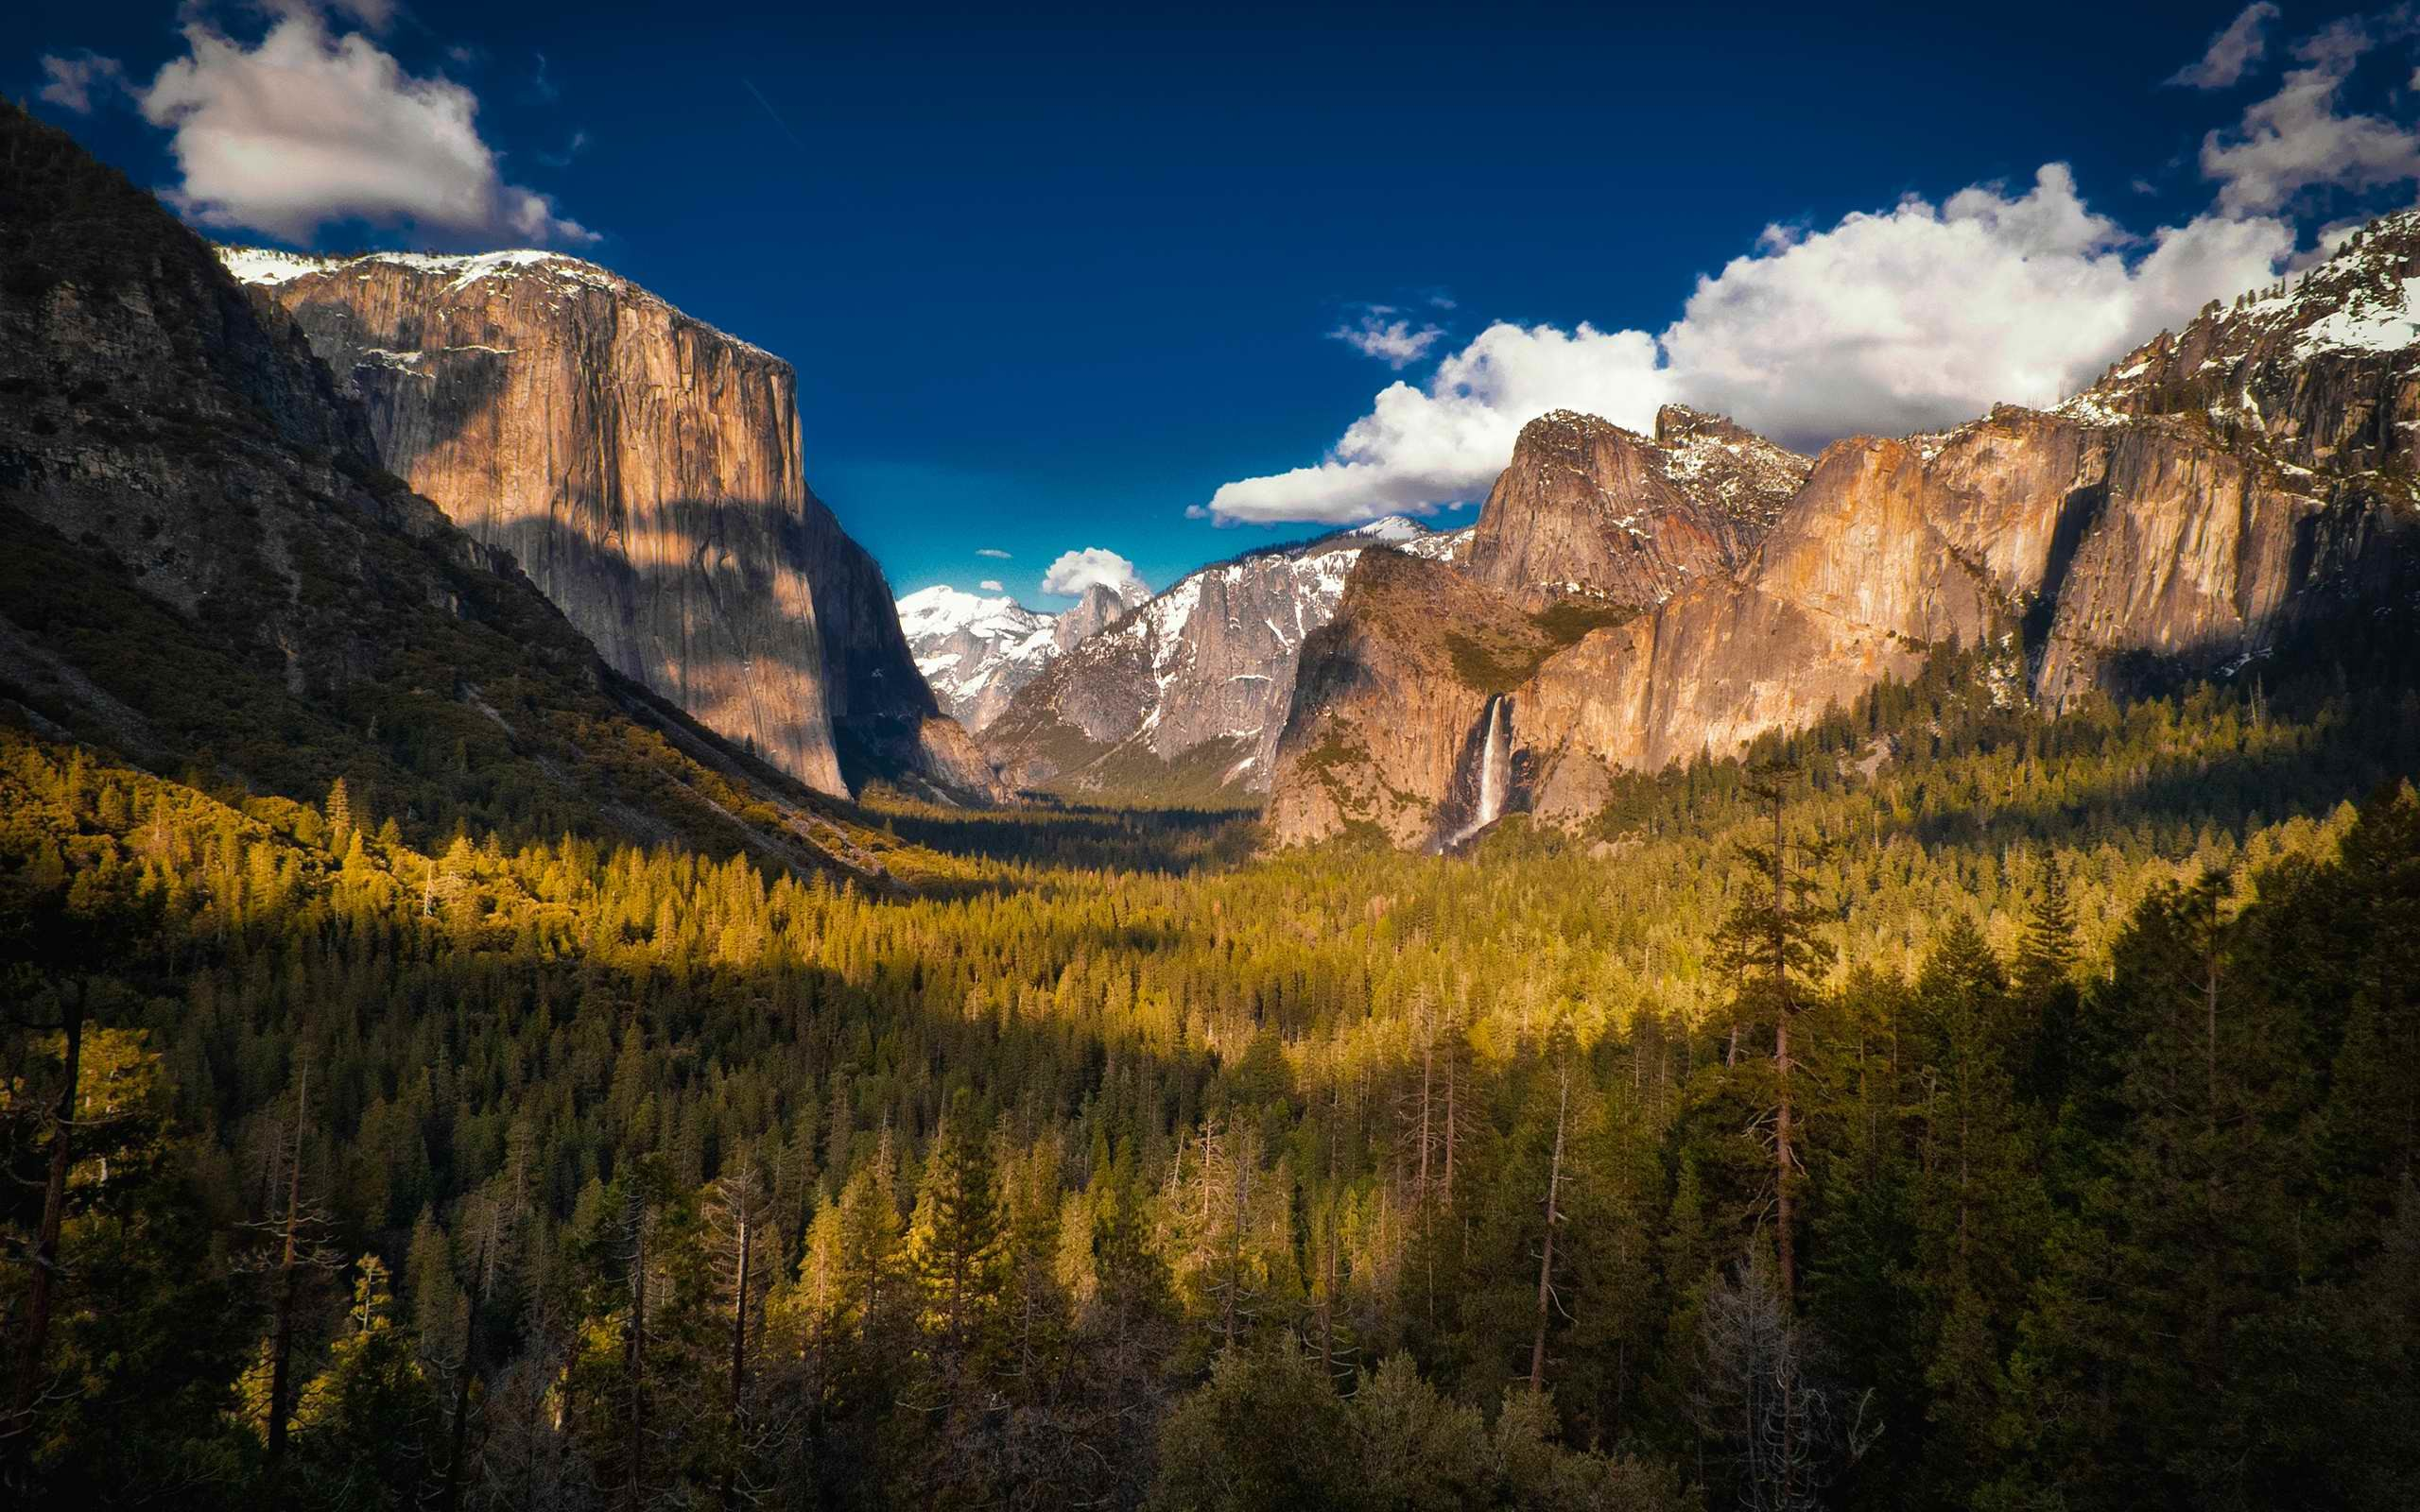 2560x1600 mac os x el capitan wallpaper #449976